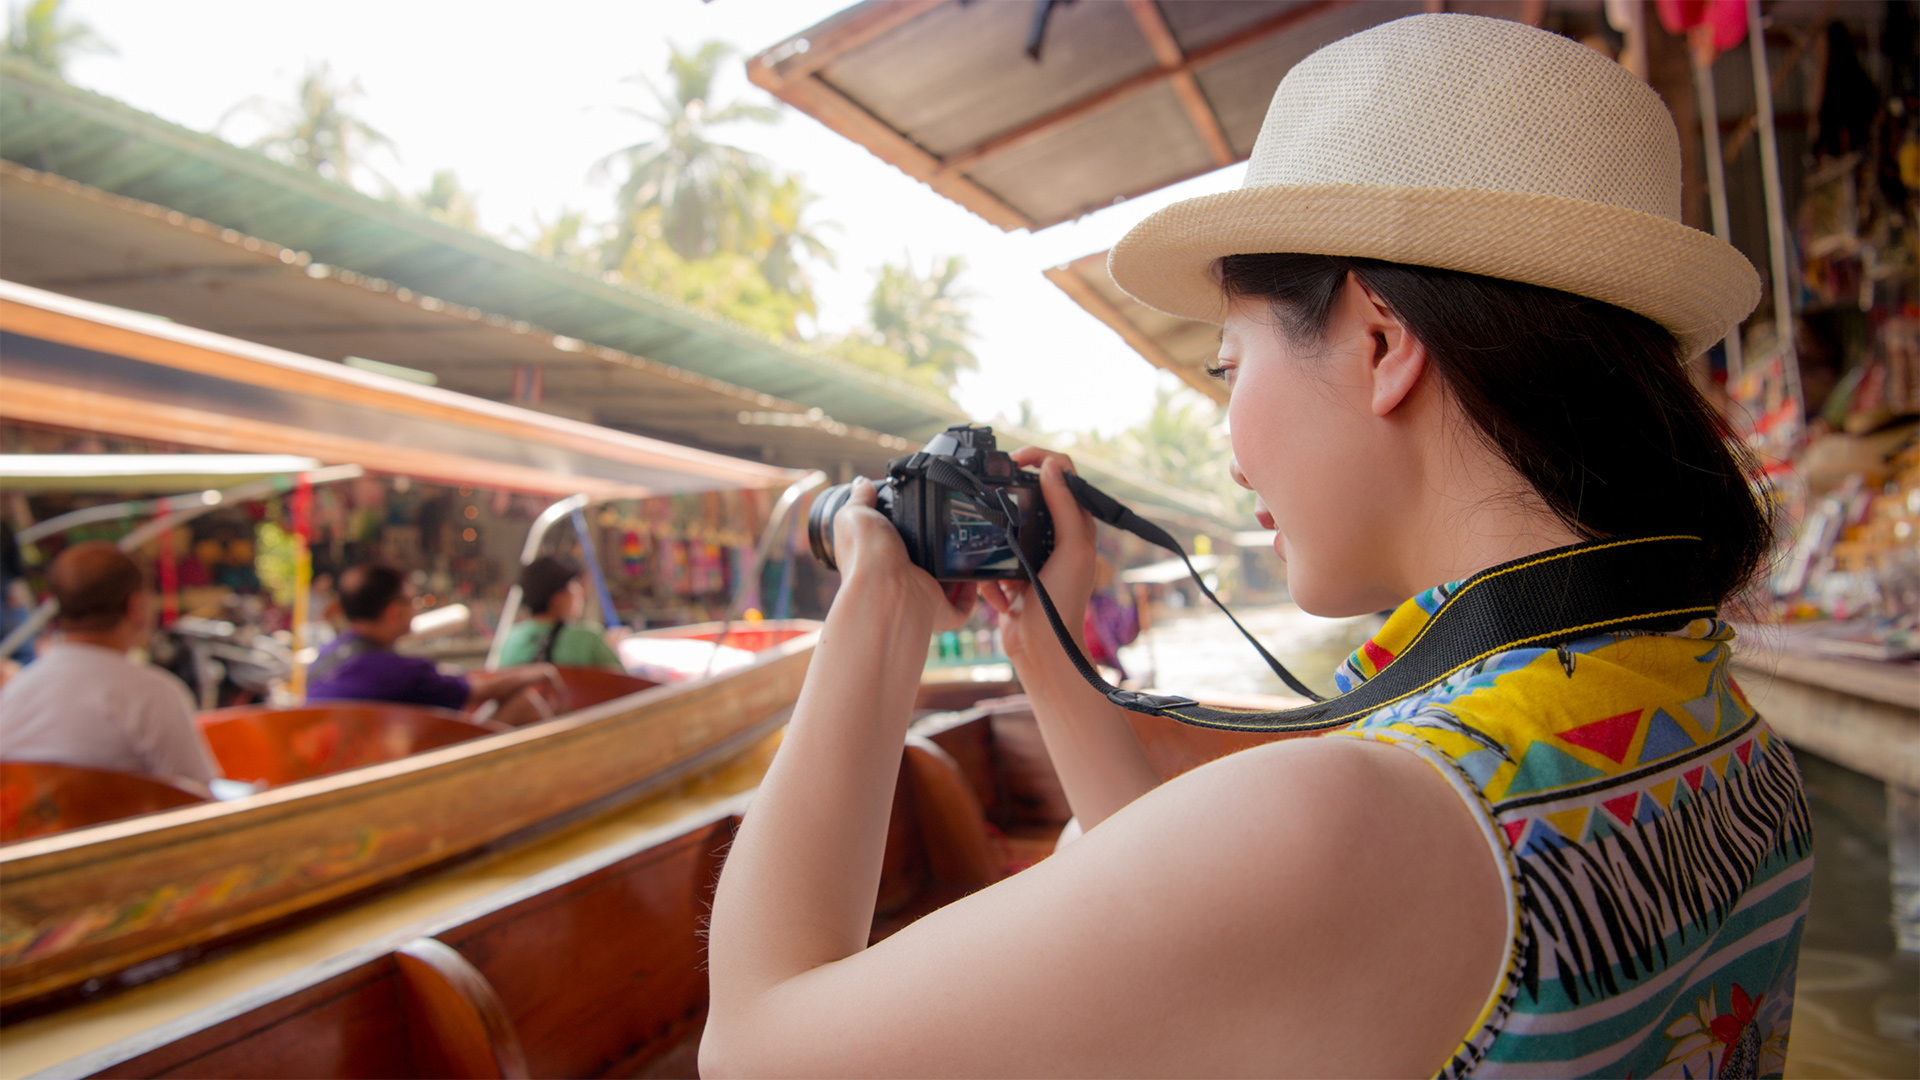 Make Your Vacation Video Projects A Fantastic Conversation Piece